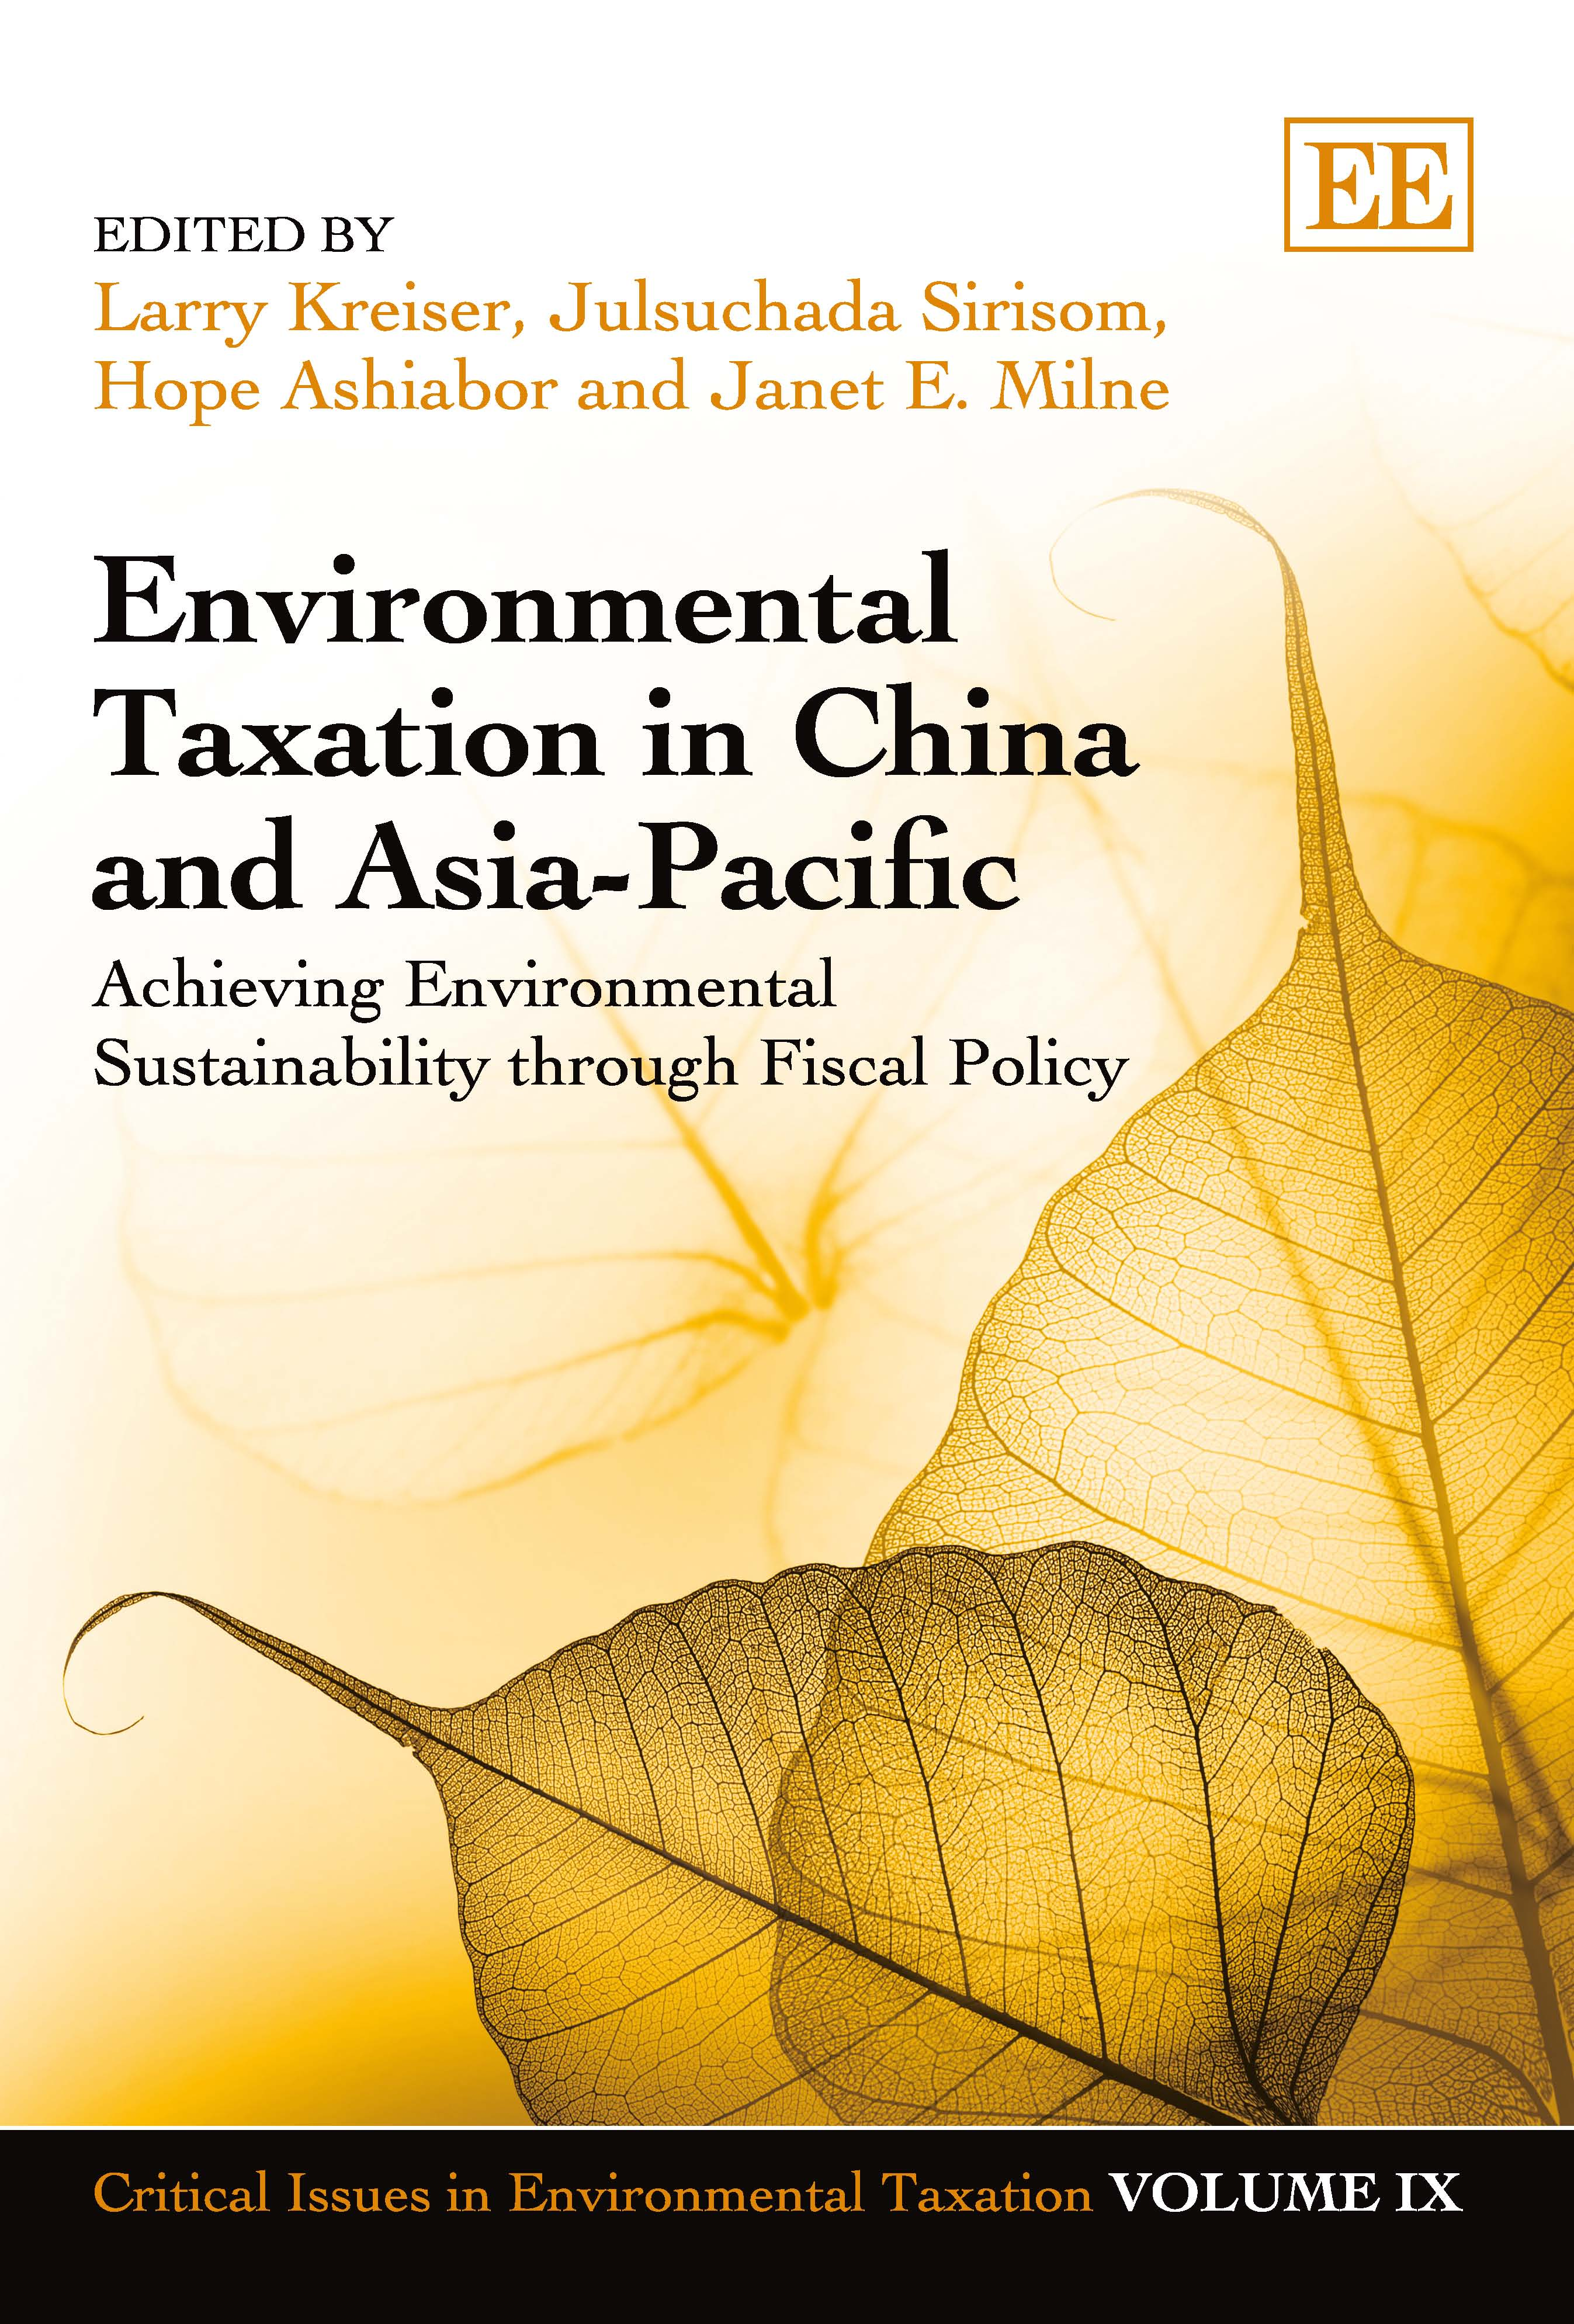 Environmental Taxation in China and Asia-Pacific